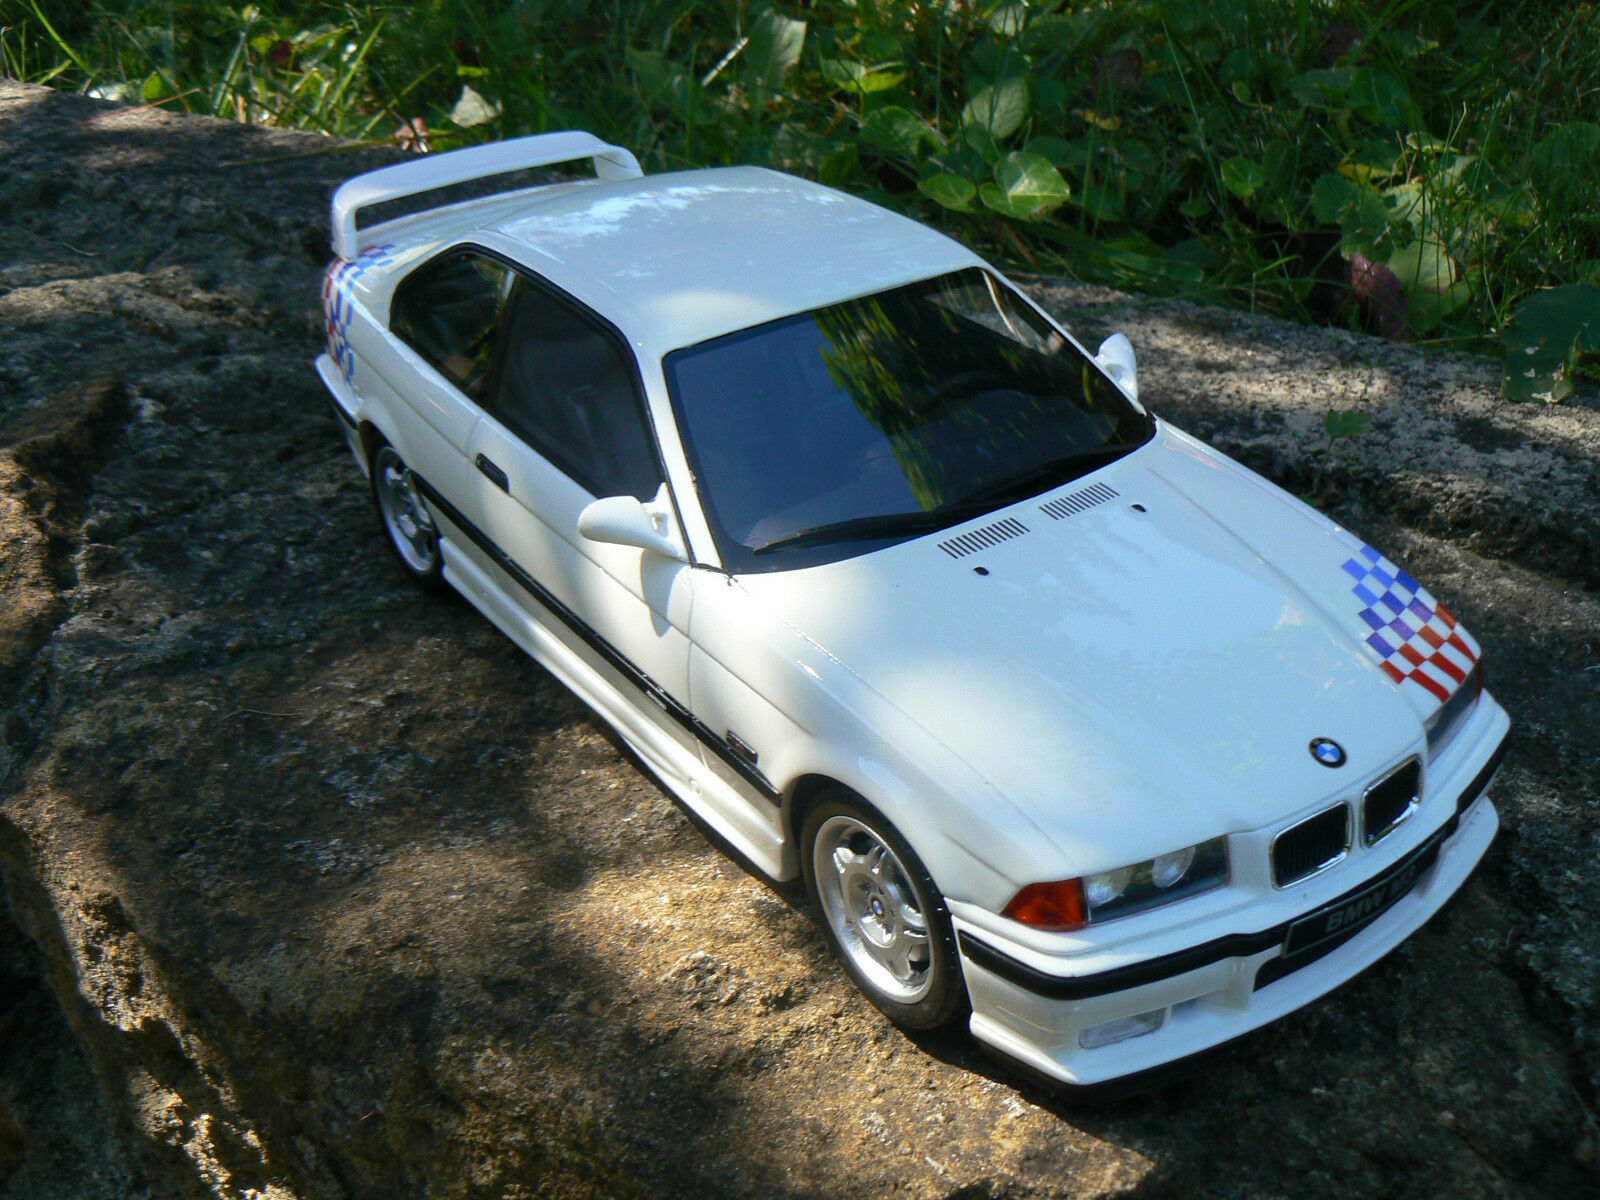 bmw bmw bmw m3 e36 lightweight 1/18 1:18 1 18 otto ottomodels ottomobile boxed boité c72bac